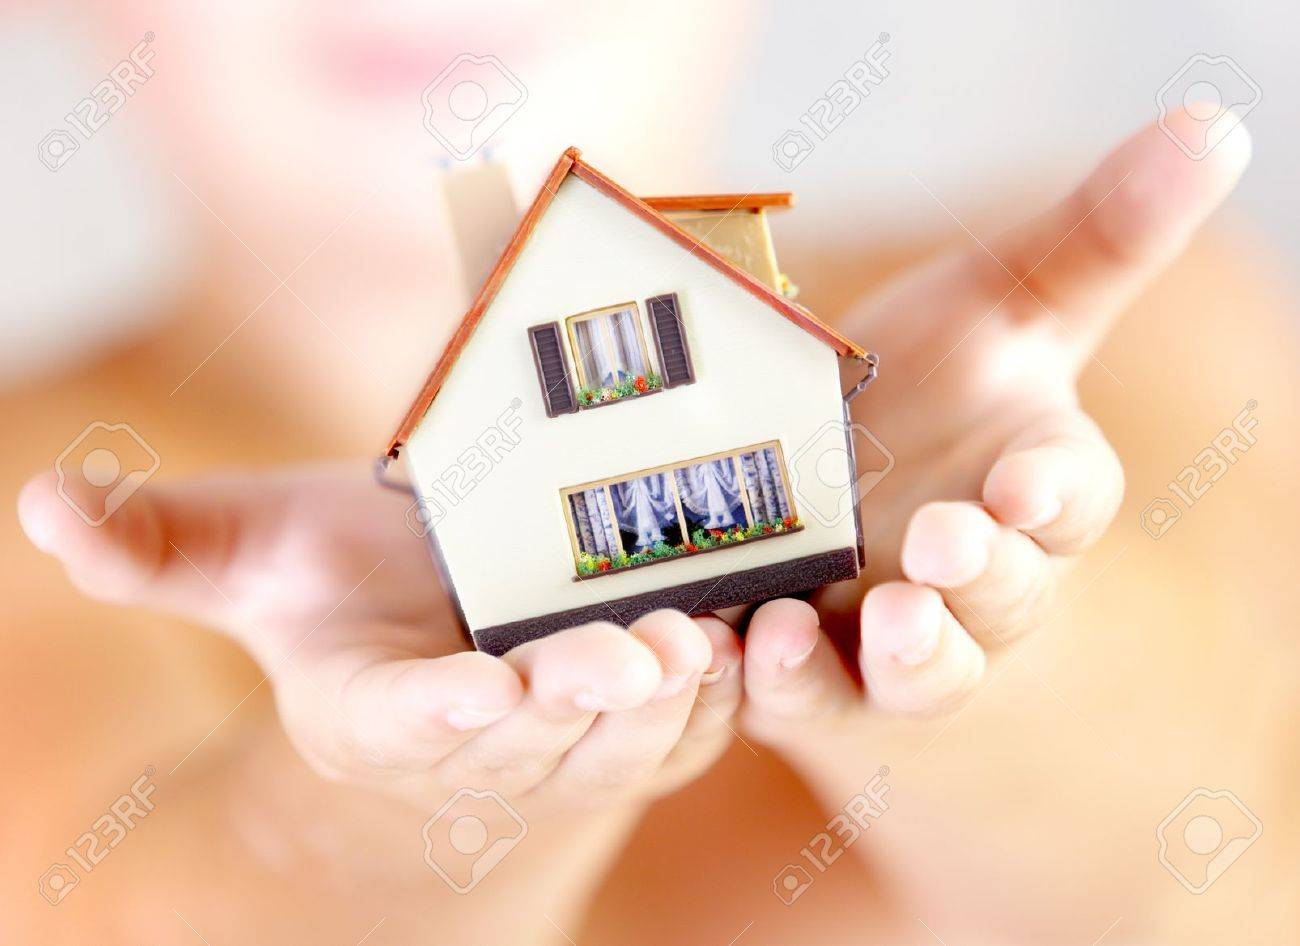 The house in human hands Stock Photo - 12938625